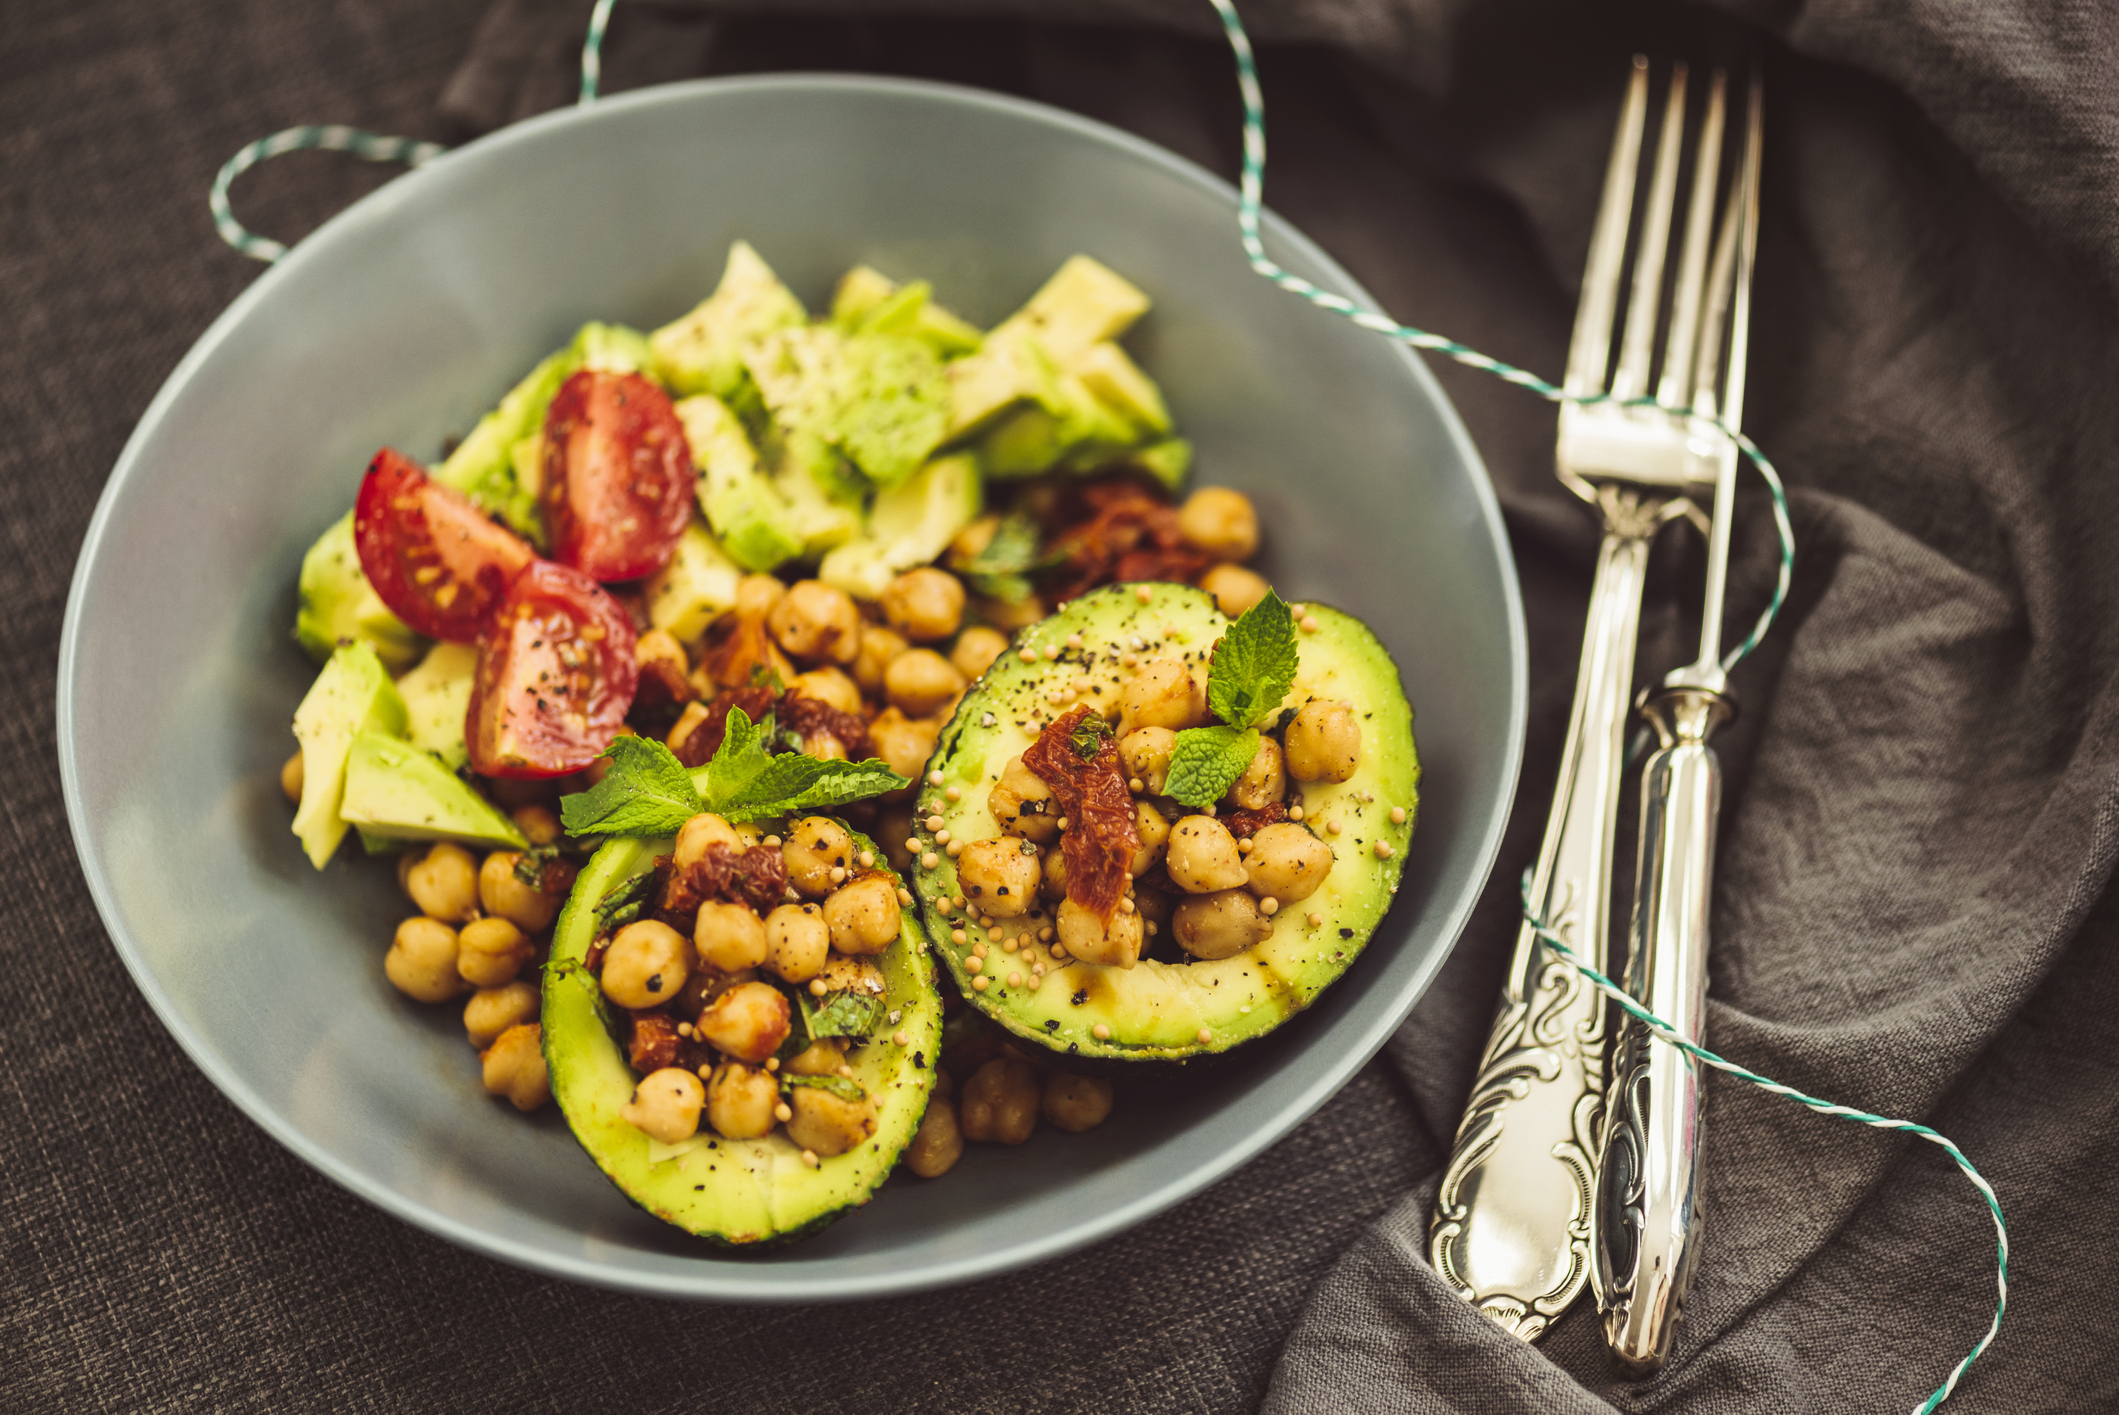 Superfood Salad with Avocado, Chickpeas and Dried Tomato decorated with mint leaves and grains of mustard seed